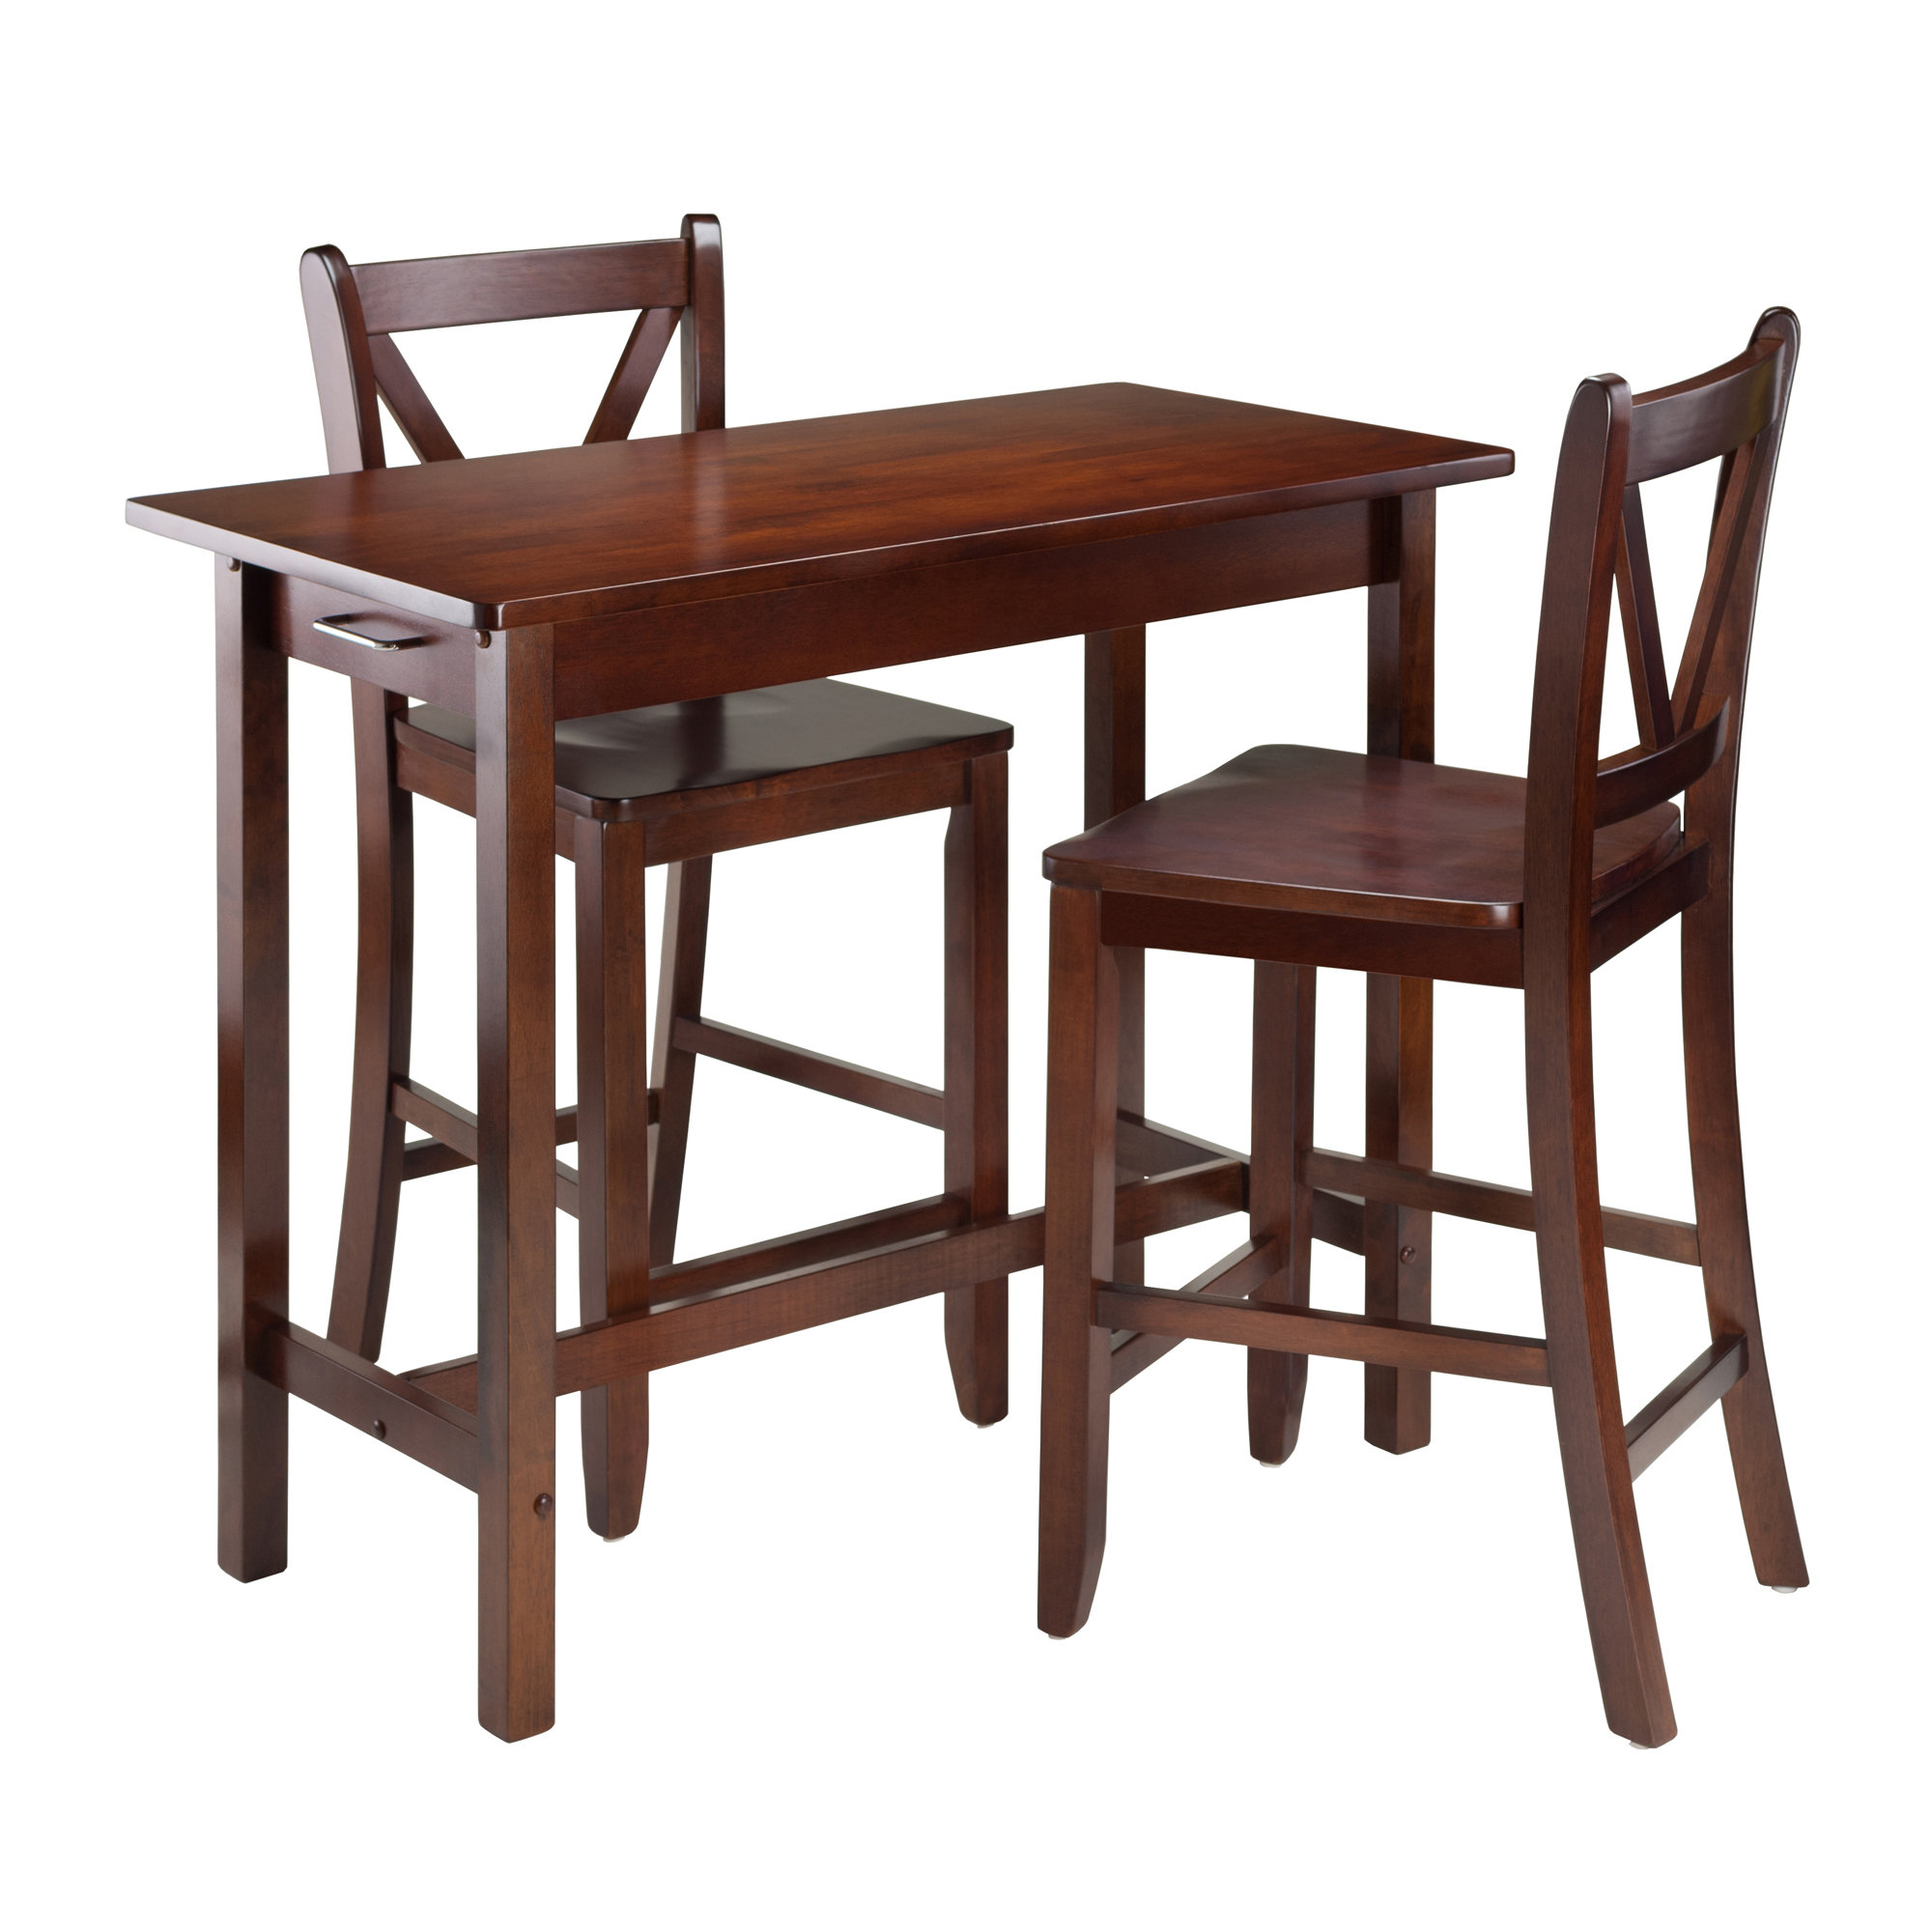 Most Recent Winsome 3 Piece Counter Height Dining Sets Throughout Winsome Kitchen Island 3 Piece Counter Height Dining Set & Reviews (View 8 of 25)